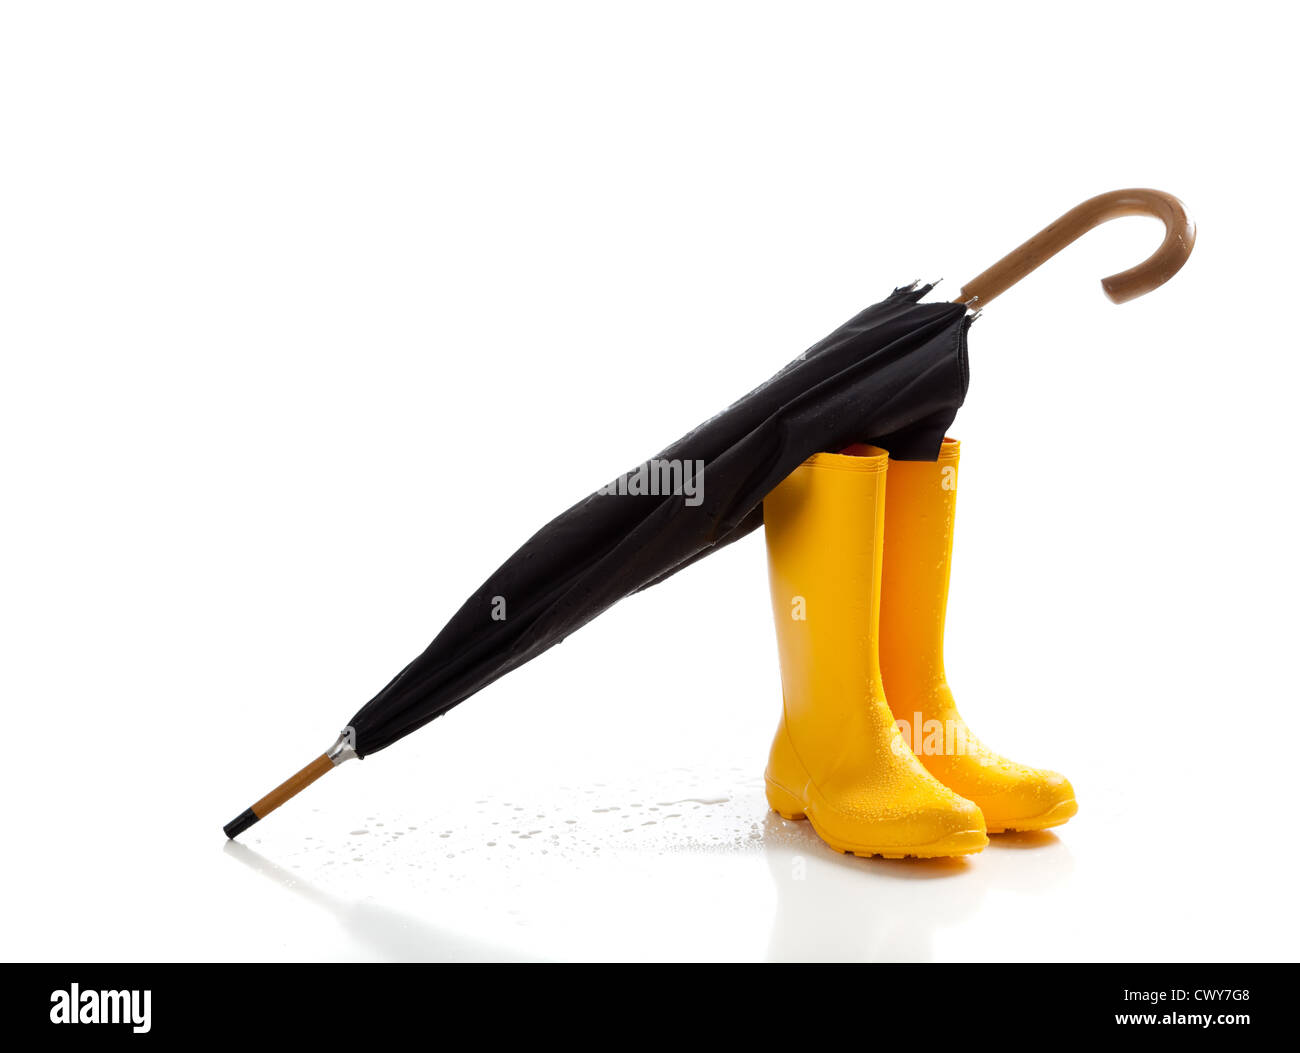 A pair of yellow rainboots and a black umbrella on a white background with copy space - Stock Image